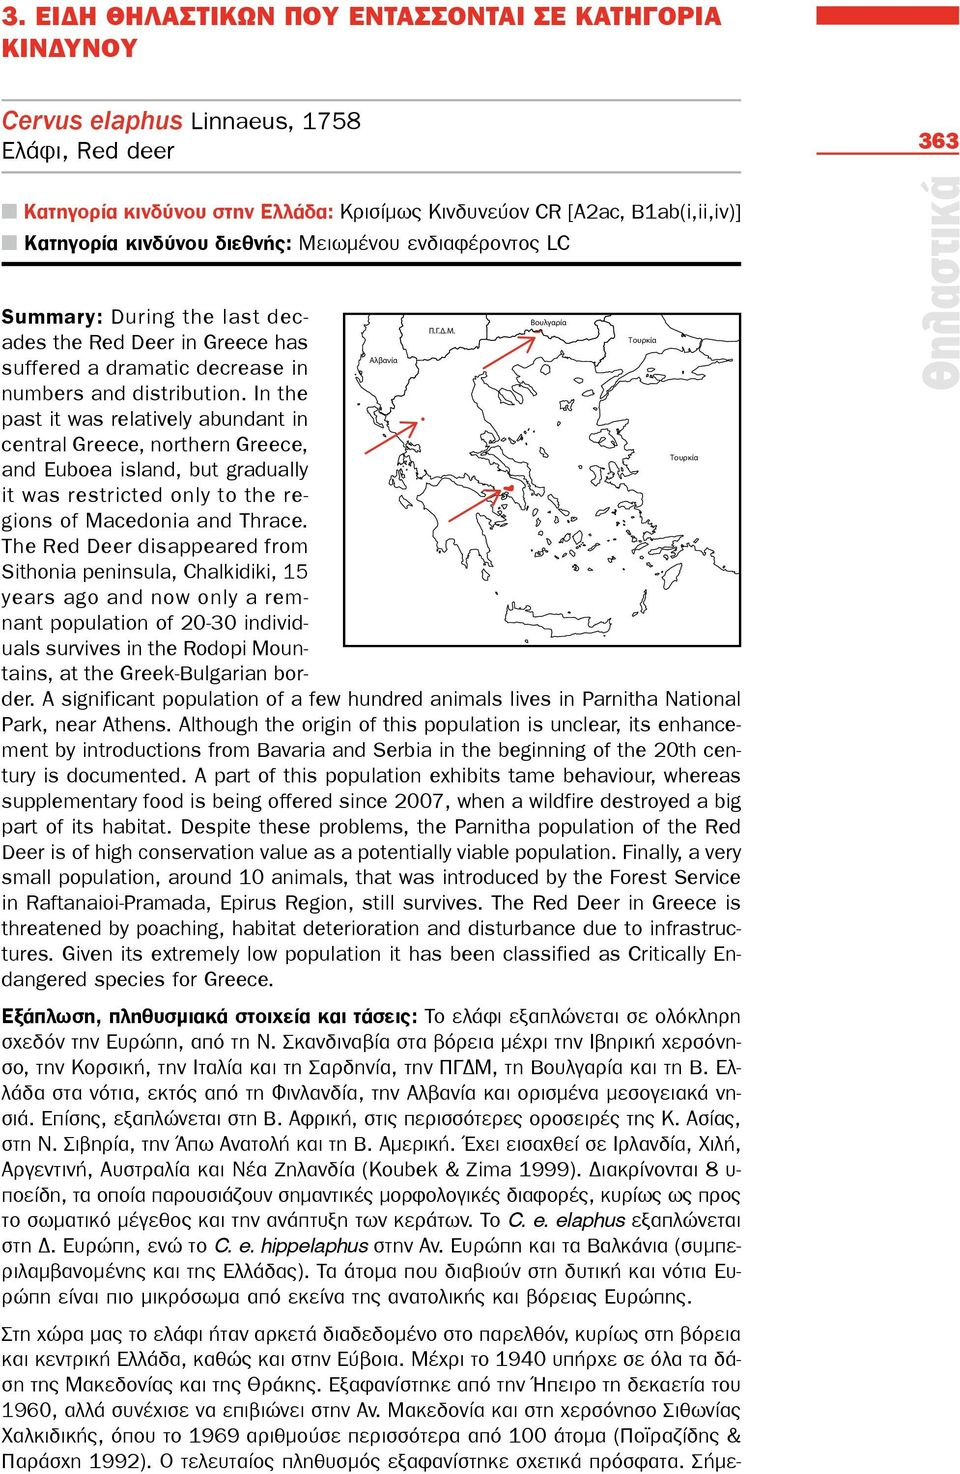 In the past it was relatively abundant in central Greece, northern Greece, and Euboea island, but gradually it was restricted only to the regions of Macedonia and Thrace.